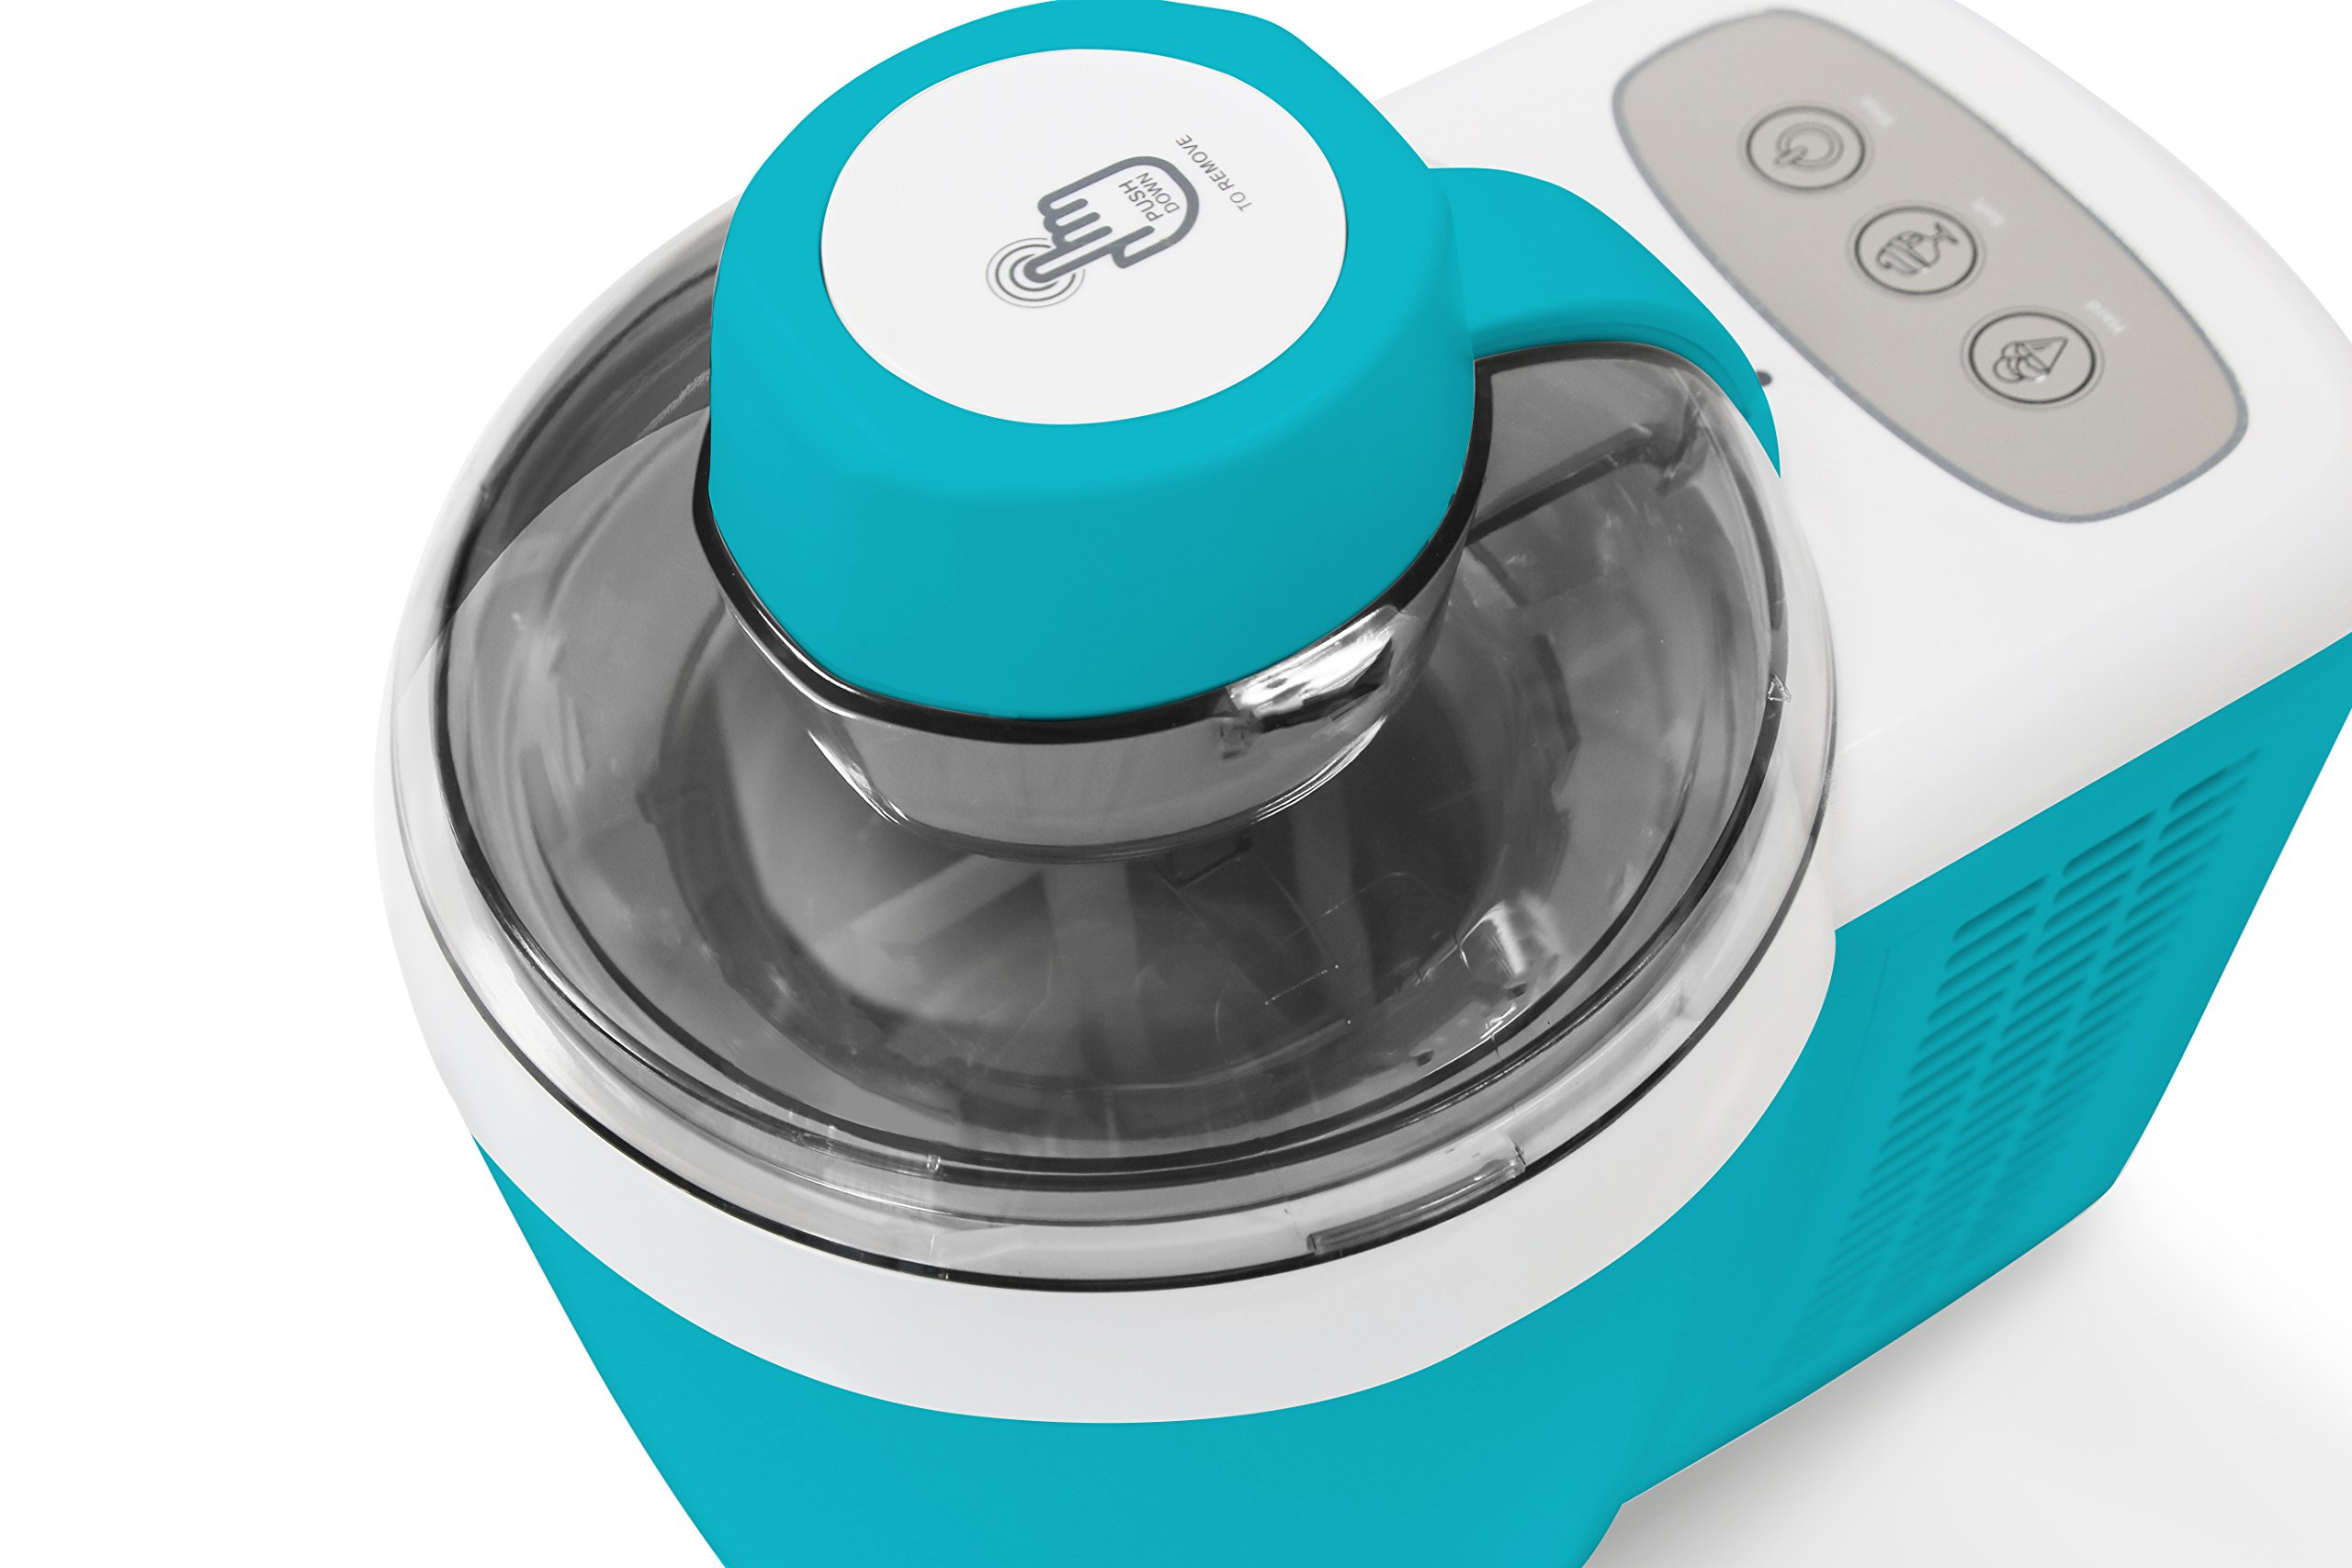 Mr. Freeze EIM-700T Self-Freezing Self-Refrigerating Ice Cream Maker, 1.5 Pint, Turquoise by Maxi-Matic (Image #6)